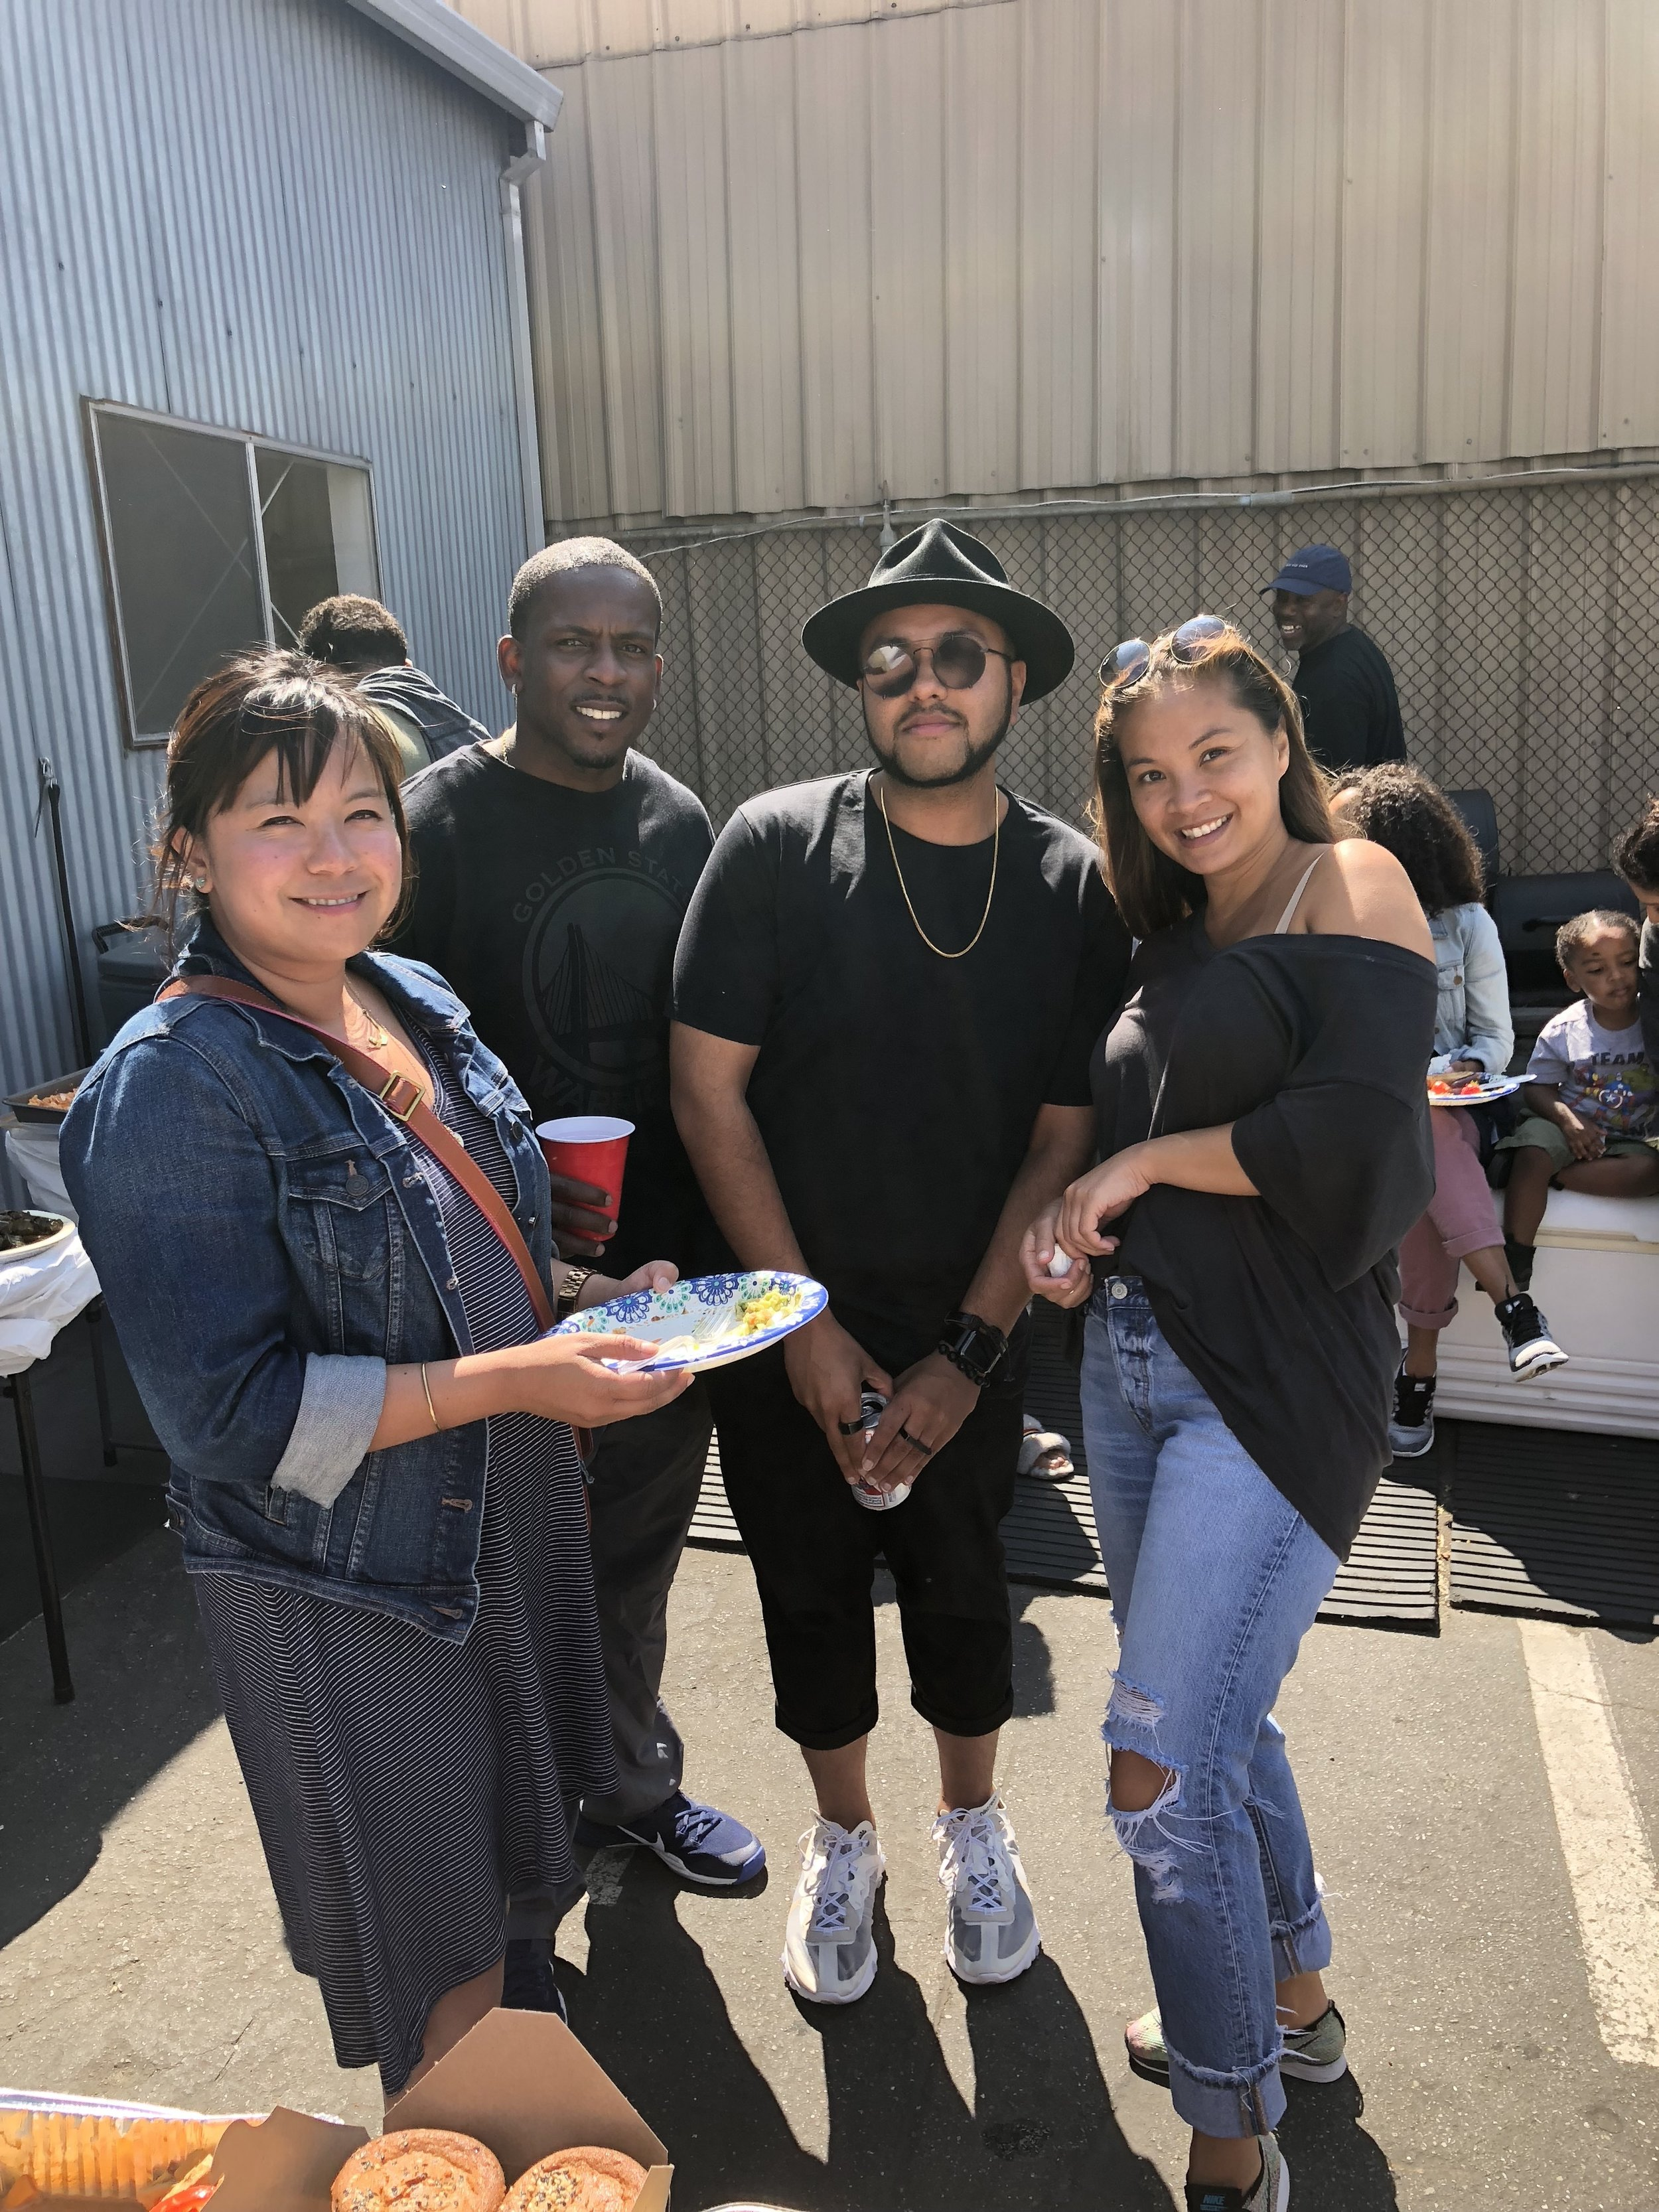 Cookout 2018 - Crew Love